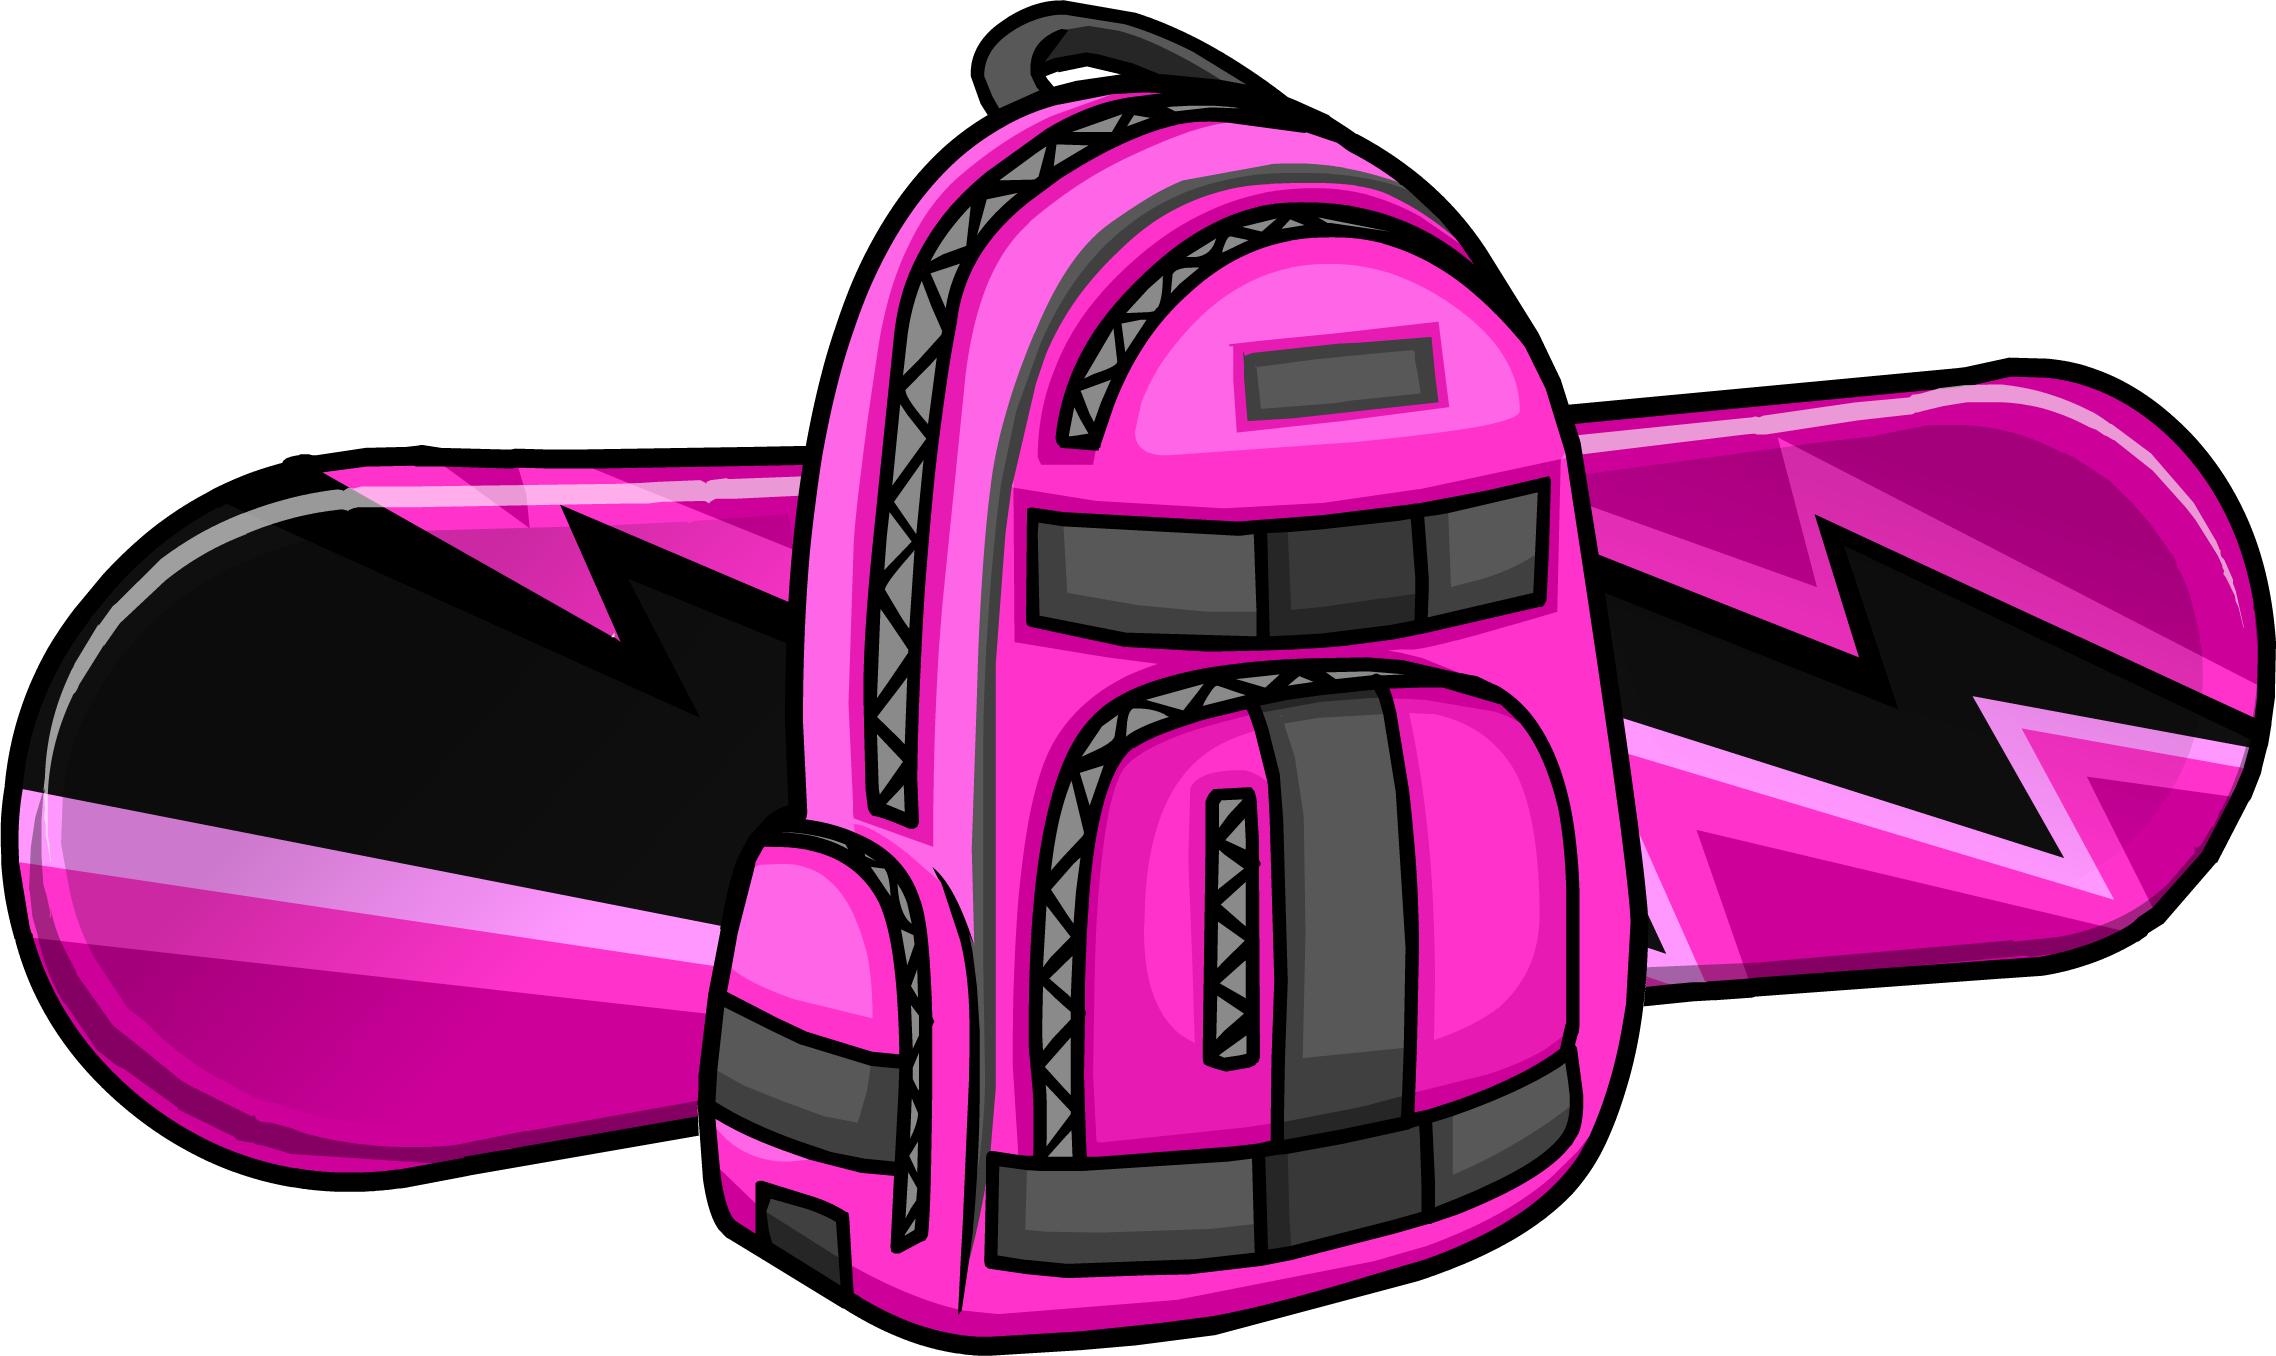 Electric Pink Snowboard